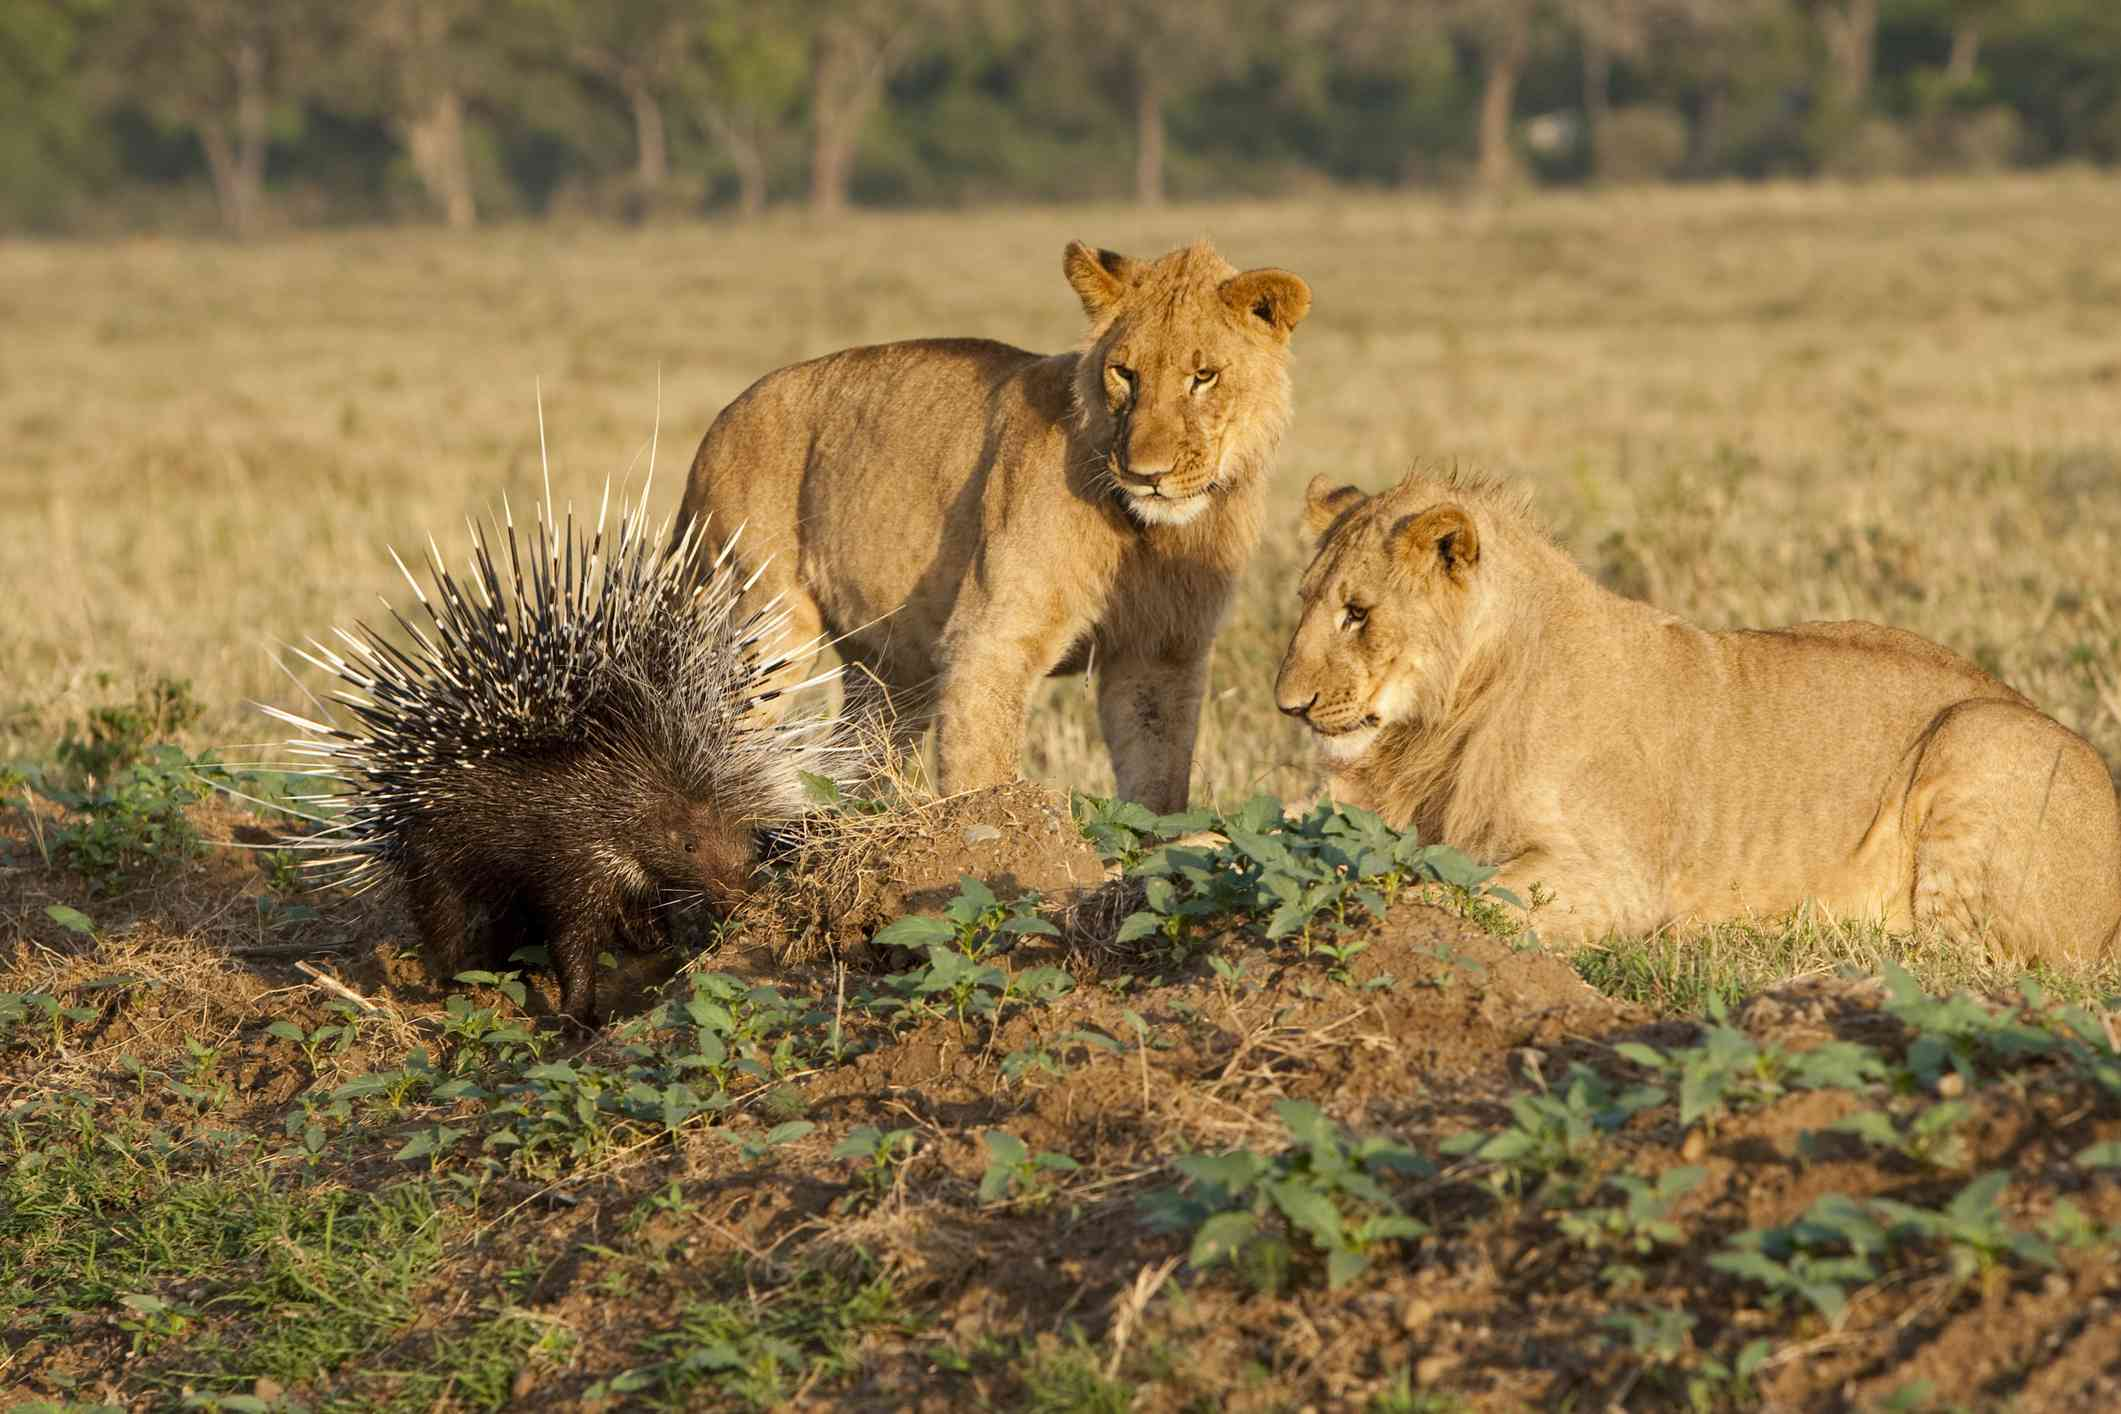 Two lions look at a porcupine